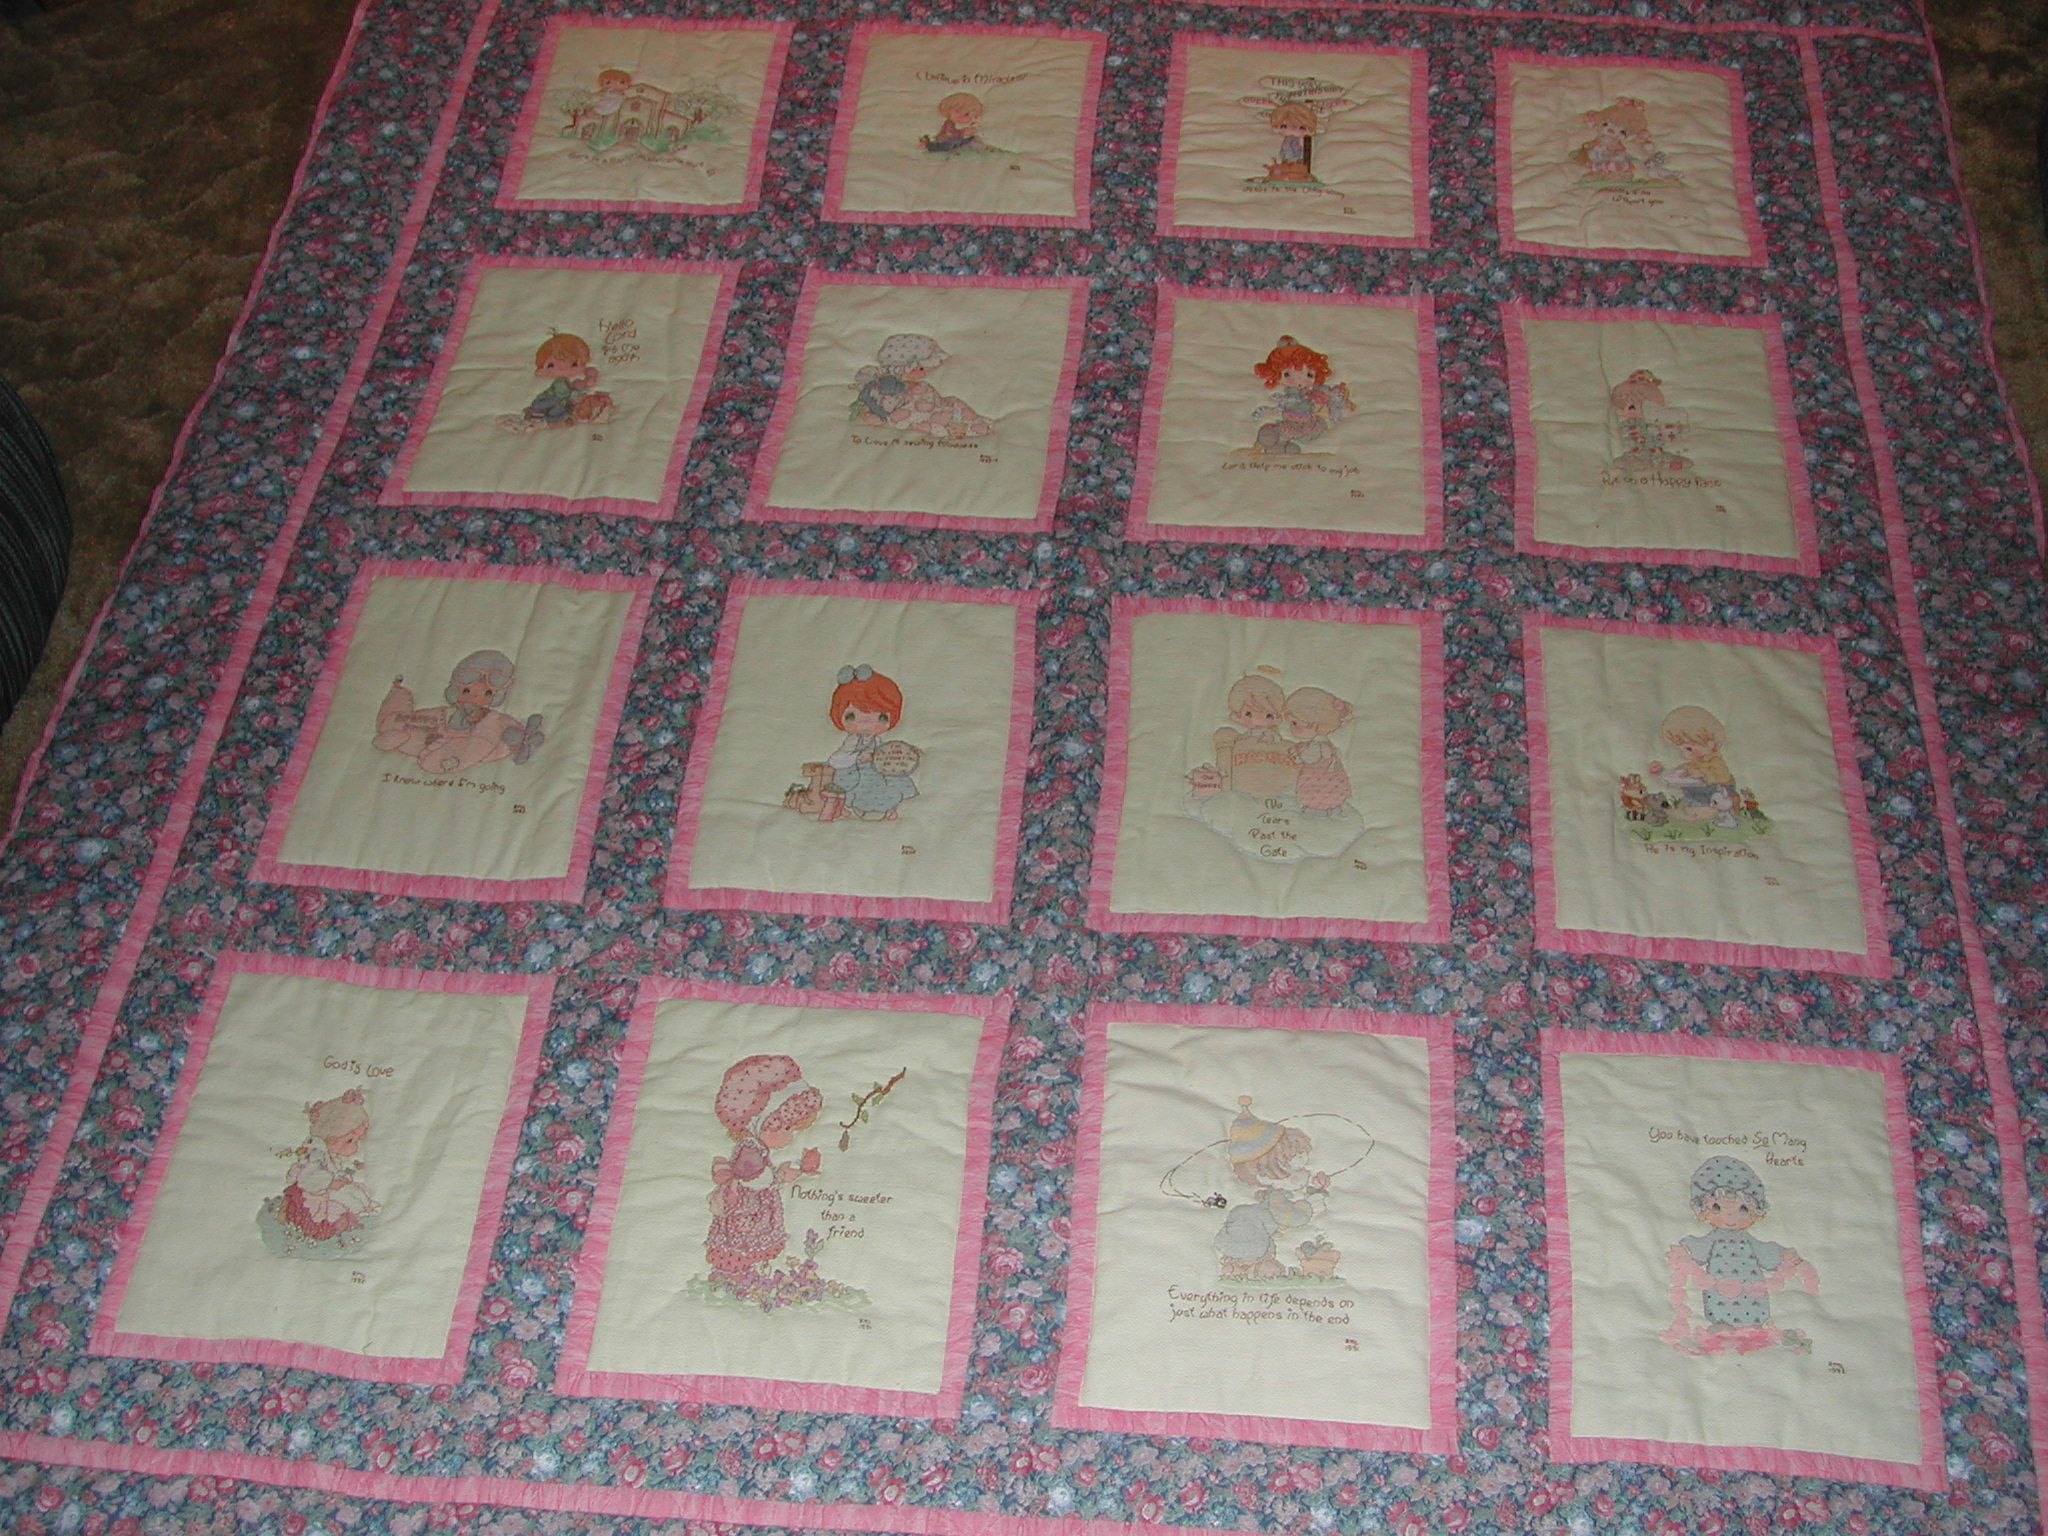 Precious Moments Cross Stitch Quilt made in 2003 | Quilting ... : precious moments quilt - Adamdwight.com